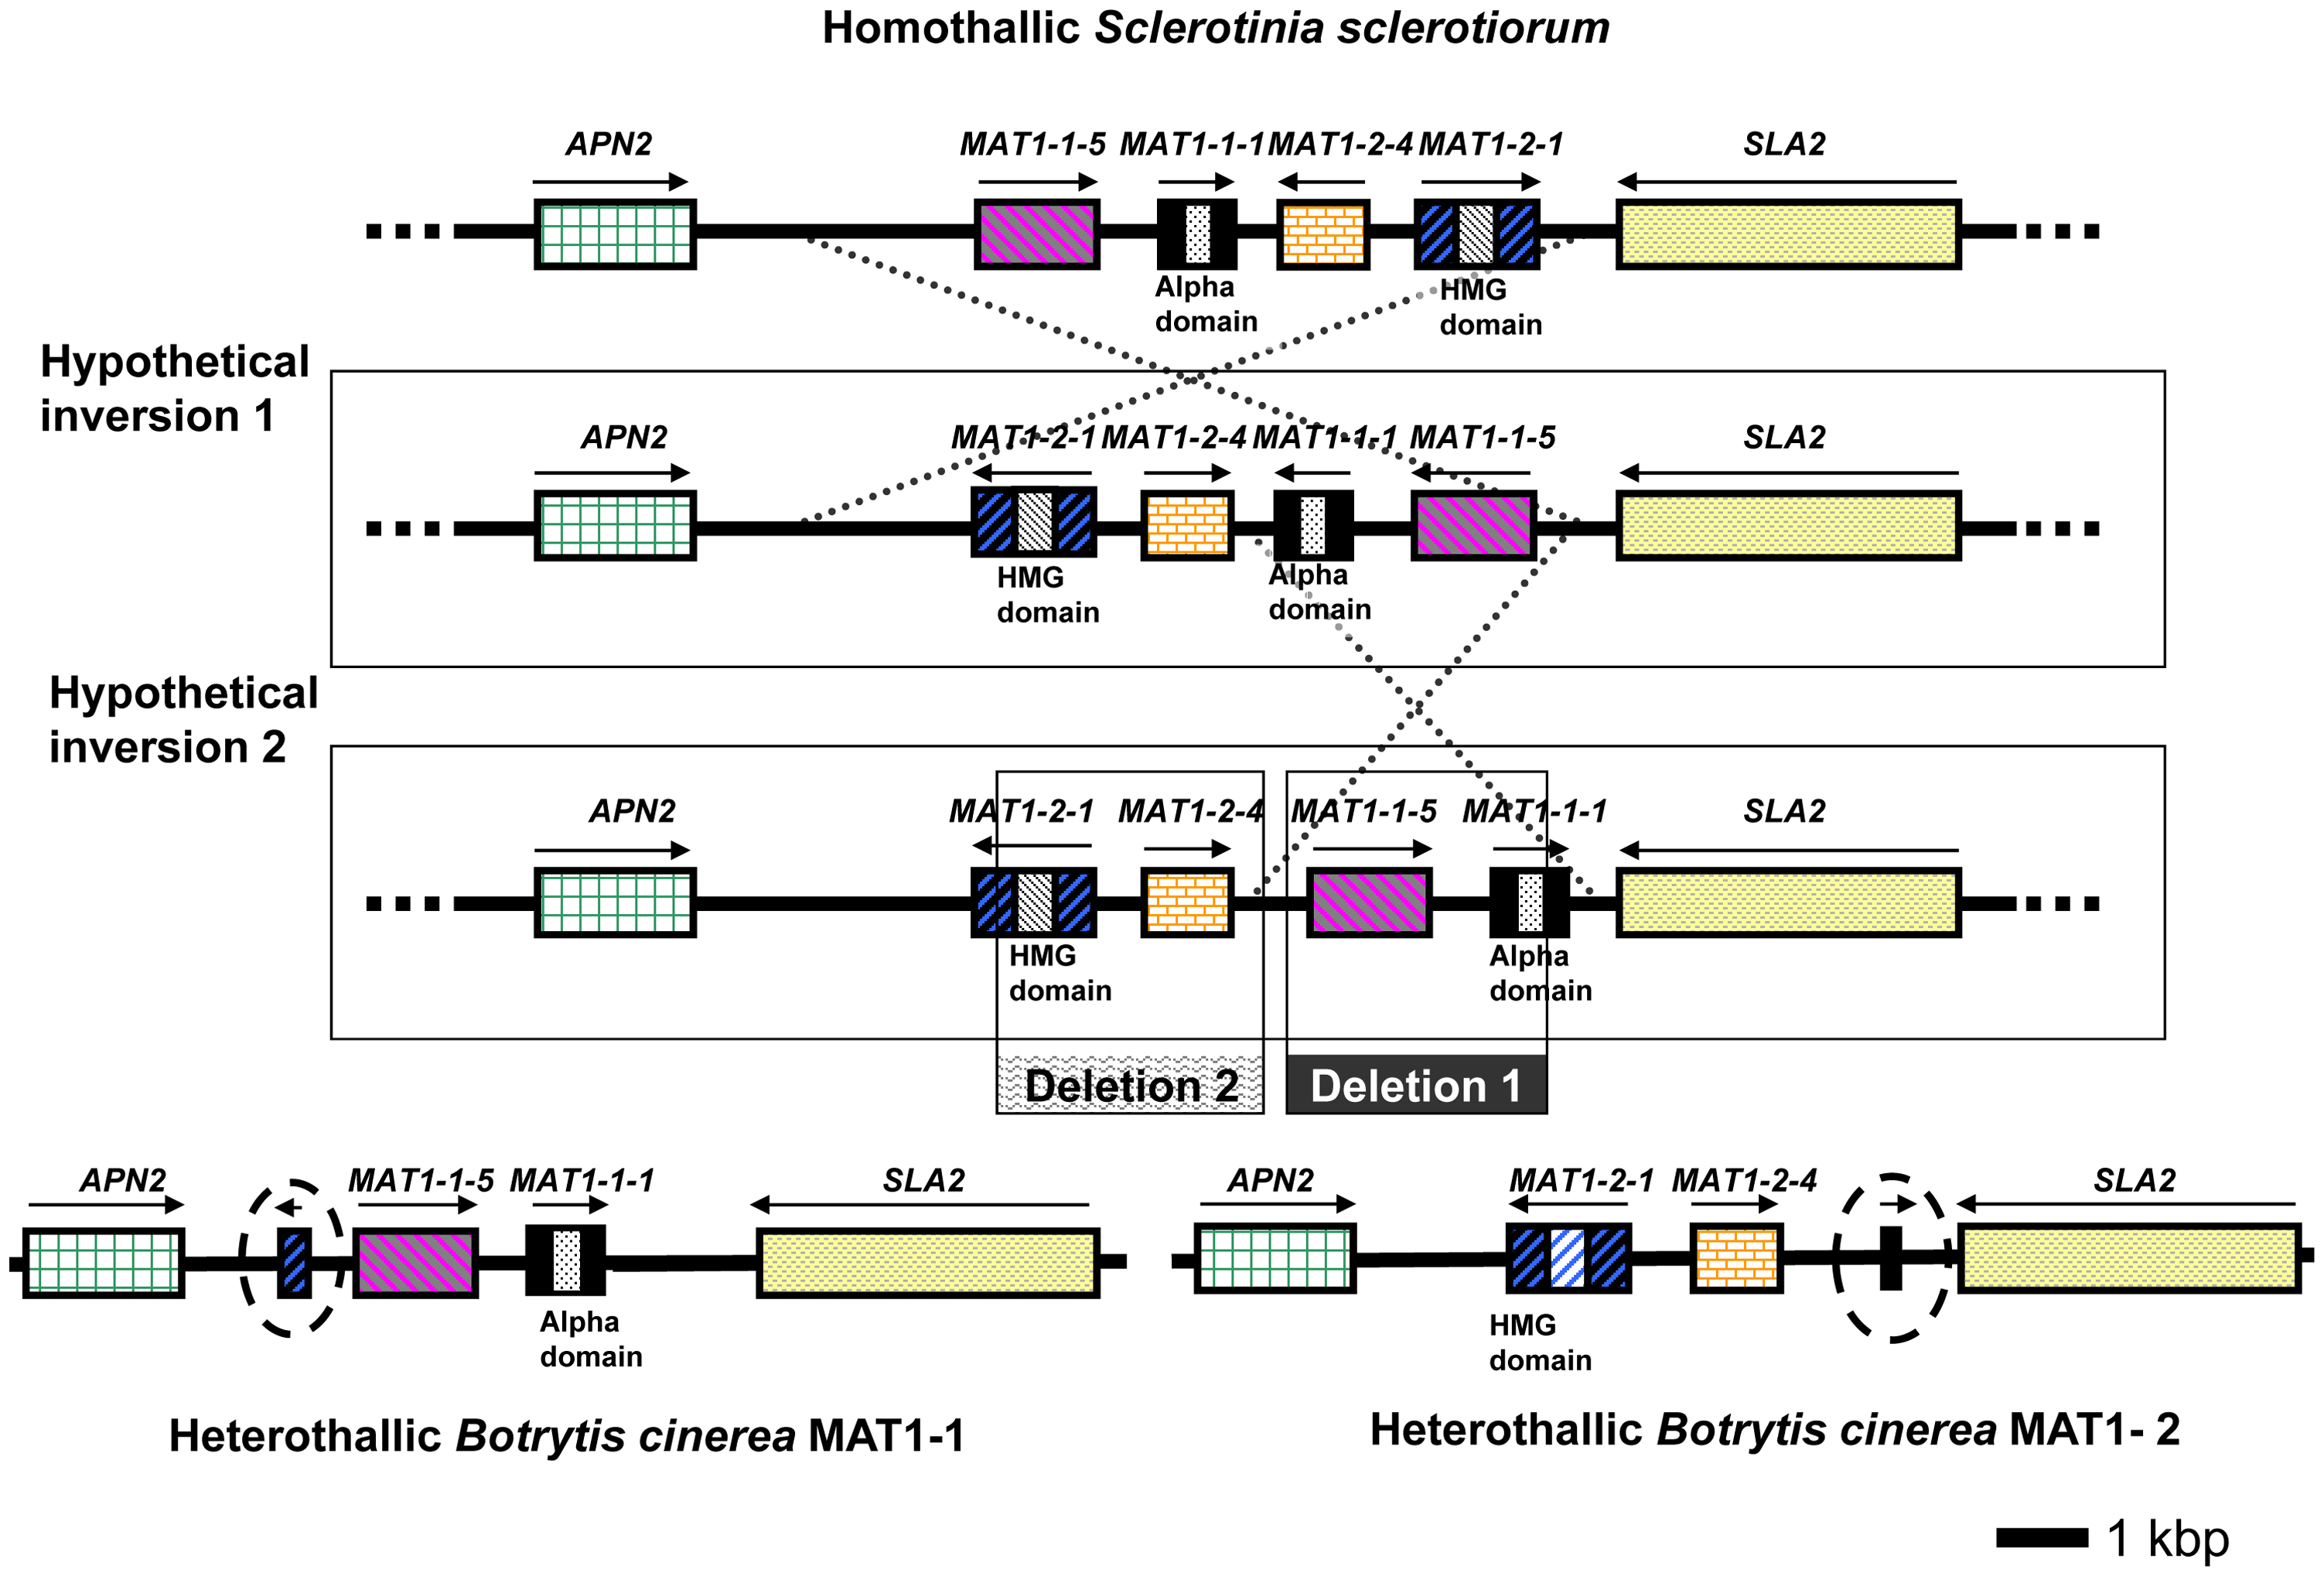 Configuration of the MAT loci in <i>S. sclerotiorum</i> and <i>B. cinerea</i> (strains B05.10 and T4).